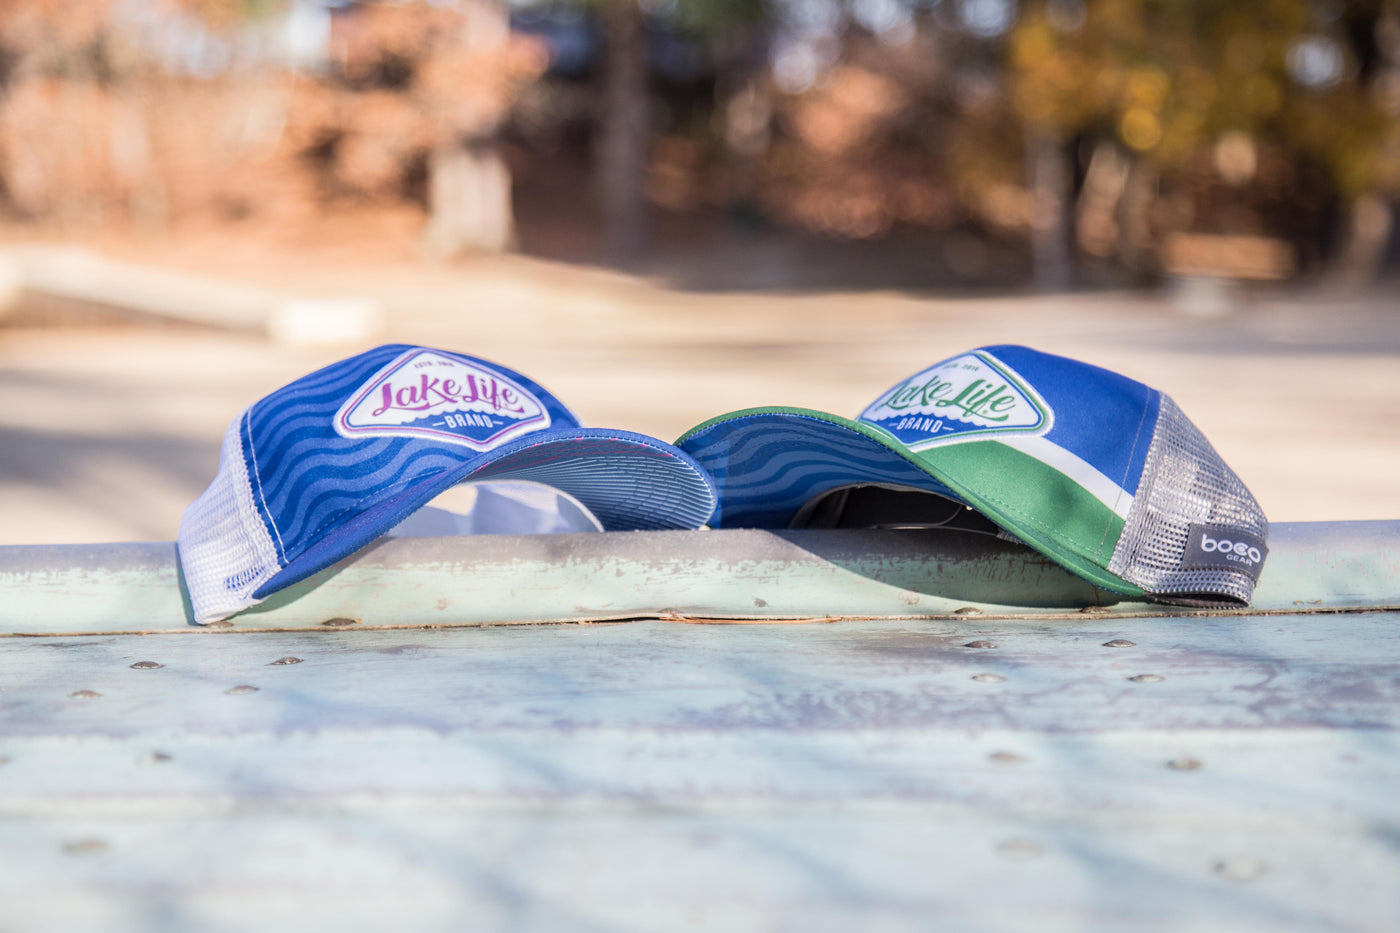 Lake Life Brand Trucker Cap